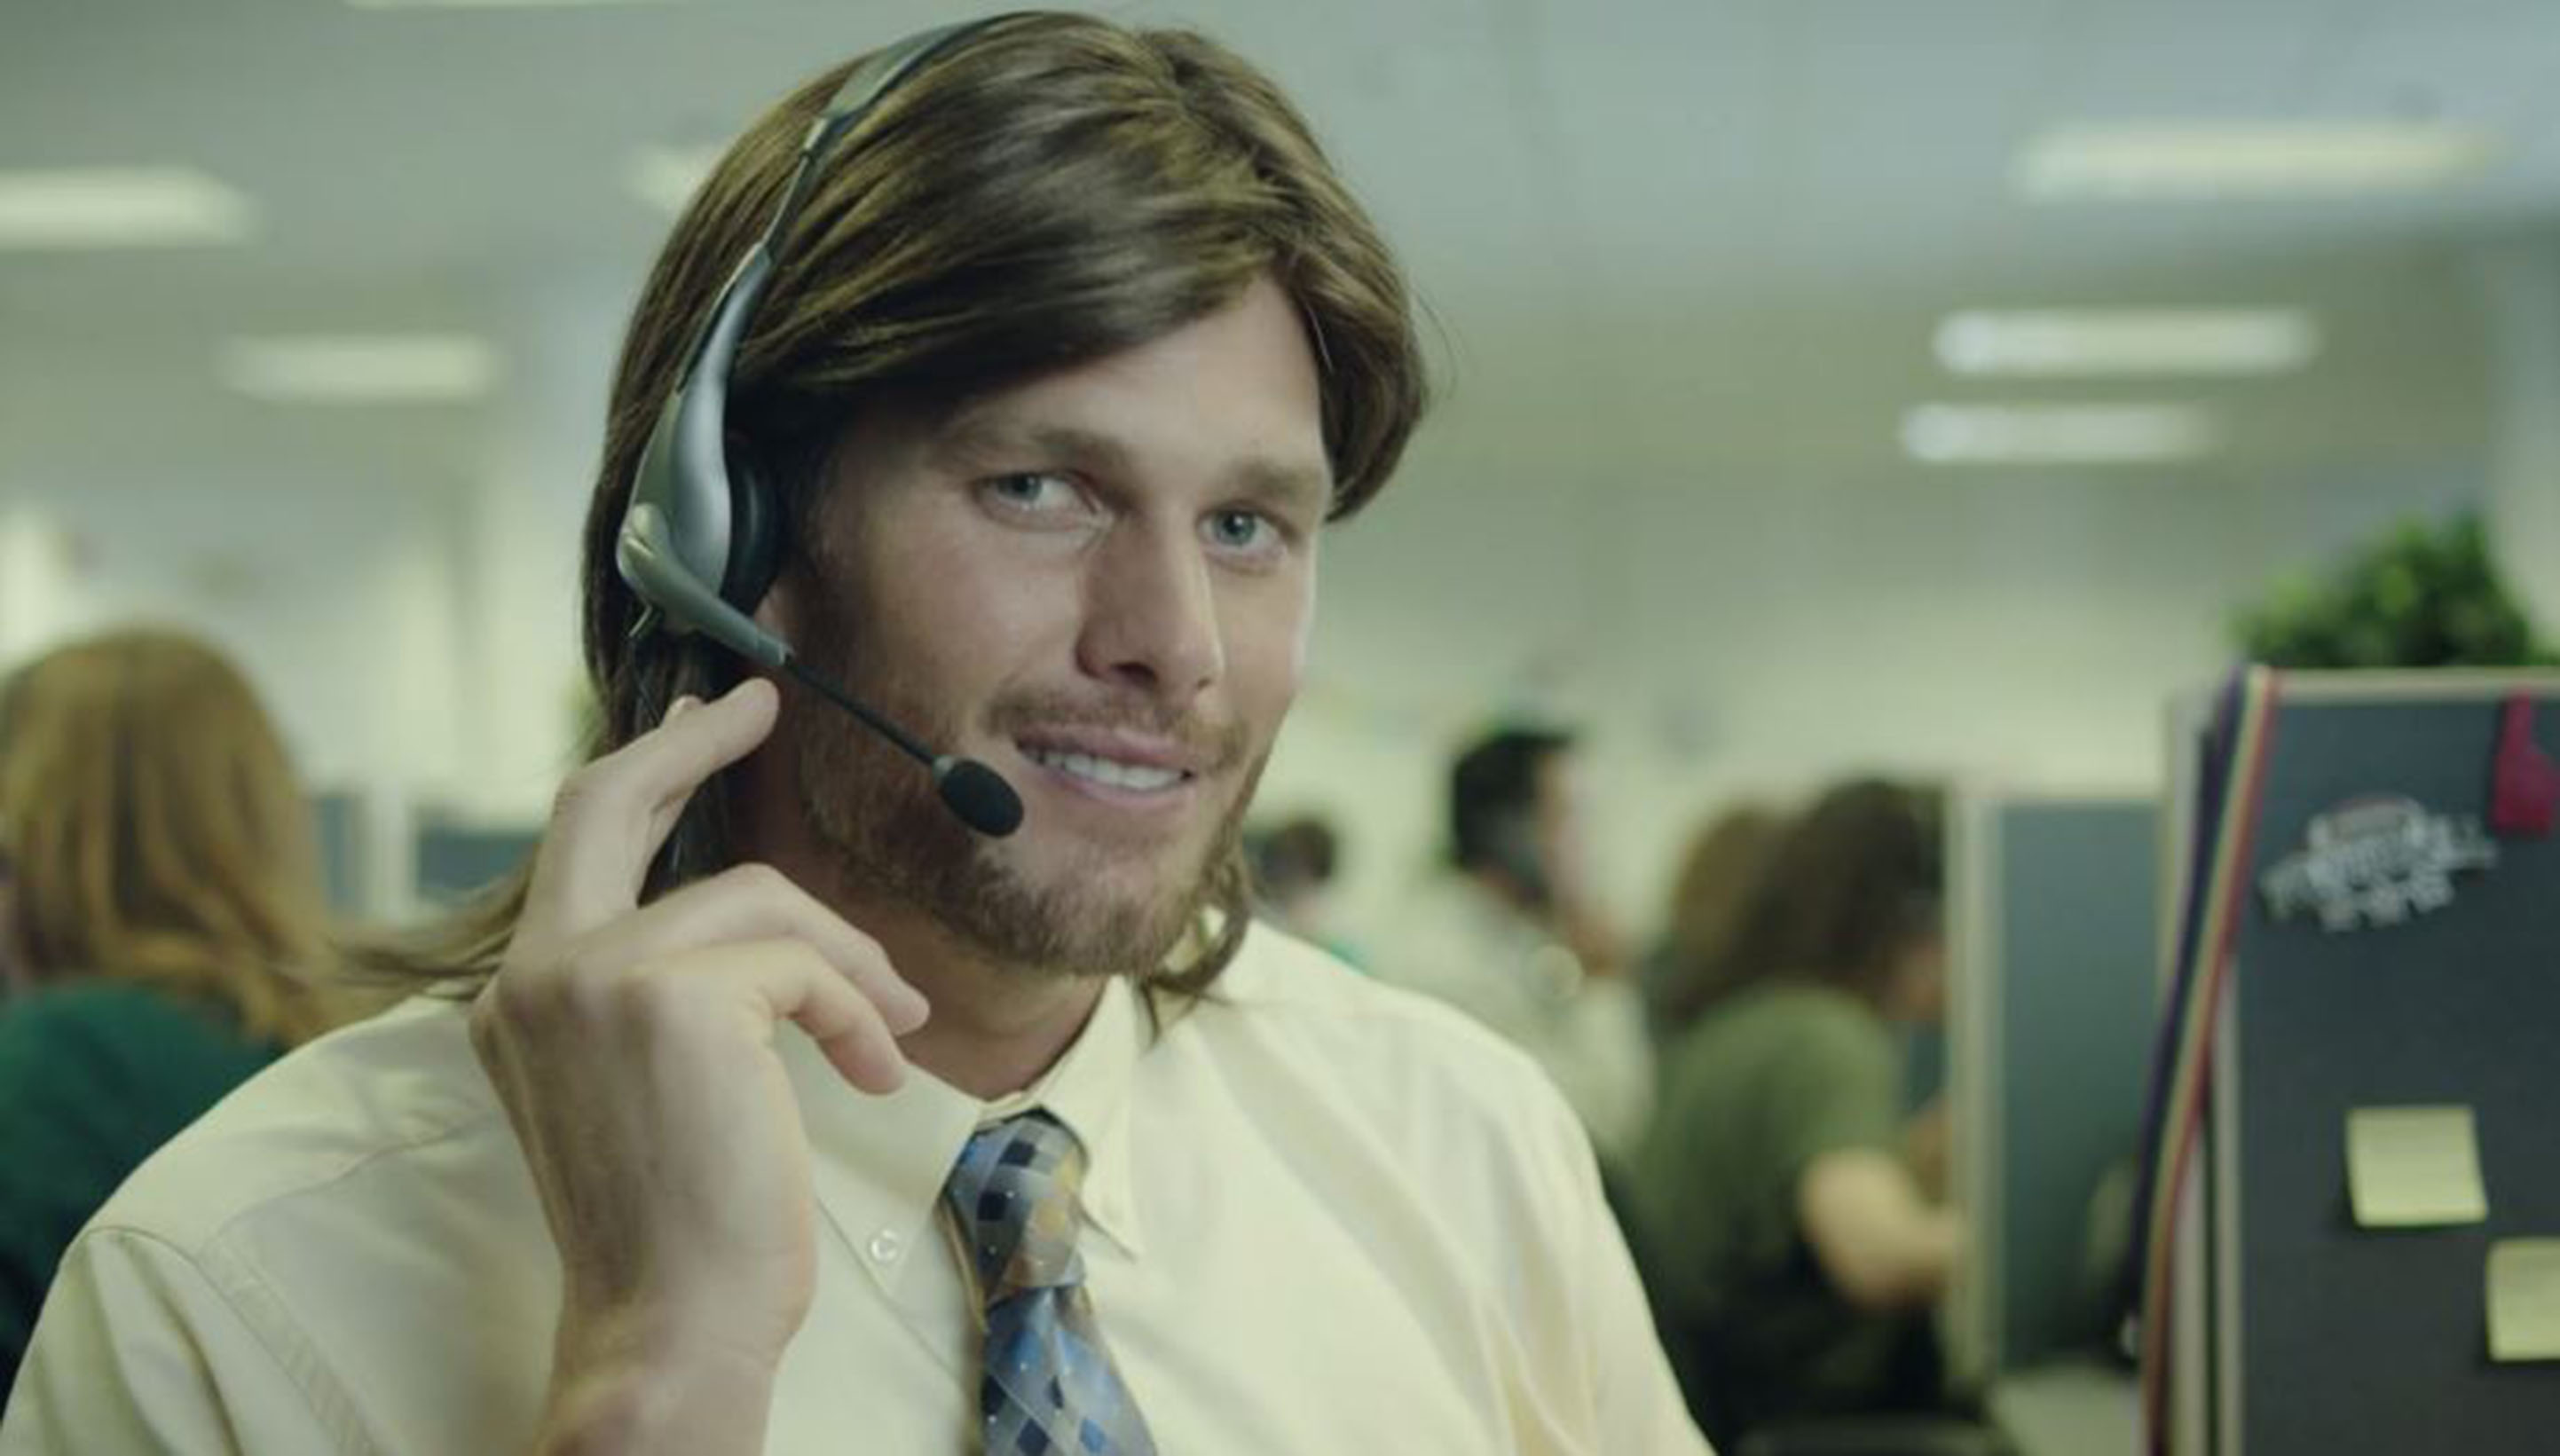 Tom Brady as a telemarketer in the Daily MVP ad.